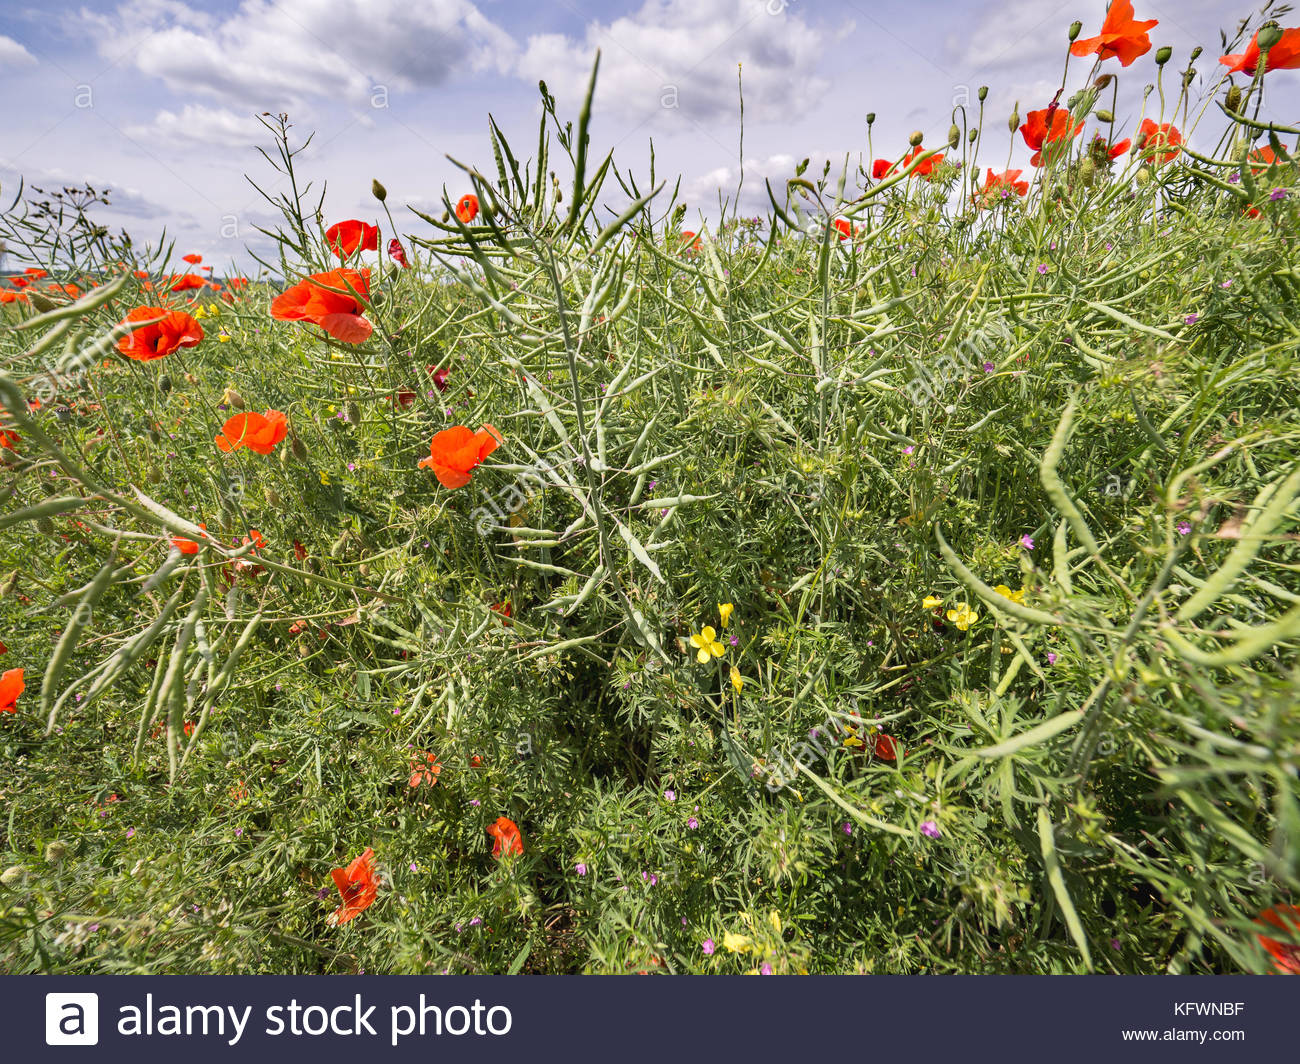 White fluffy flowers stock photos white fluffy flowers stock poppies and wild flowers with blue sky and white fluffy clounds stock image mightylinksfo